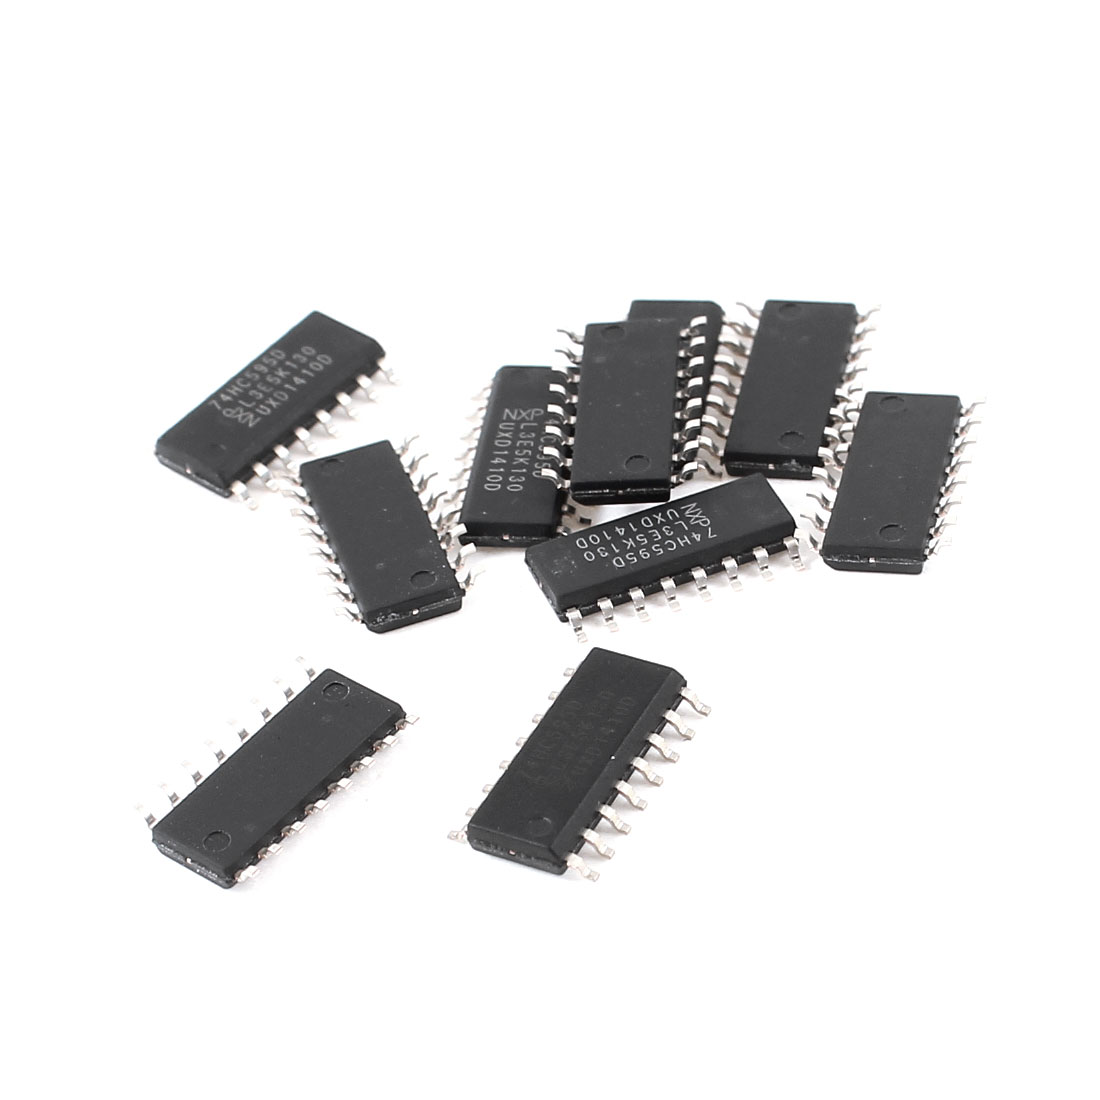 10 Pcs 74HC595D Electronic SMD 4mm SOP-16 8-Bit Latch Shift Register